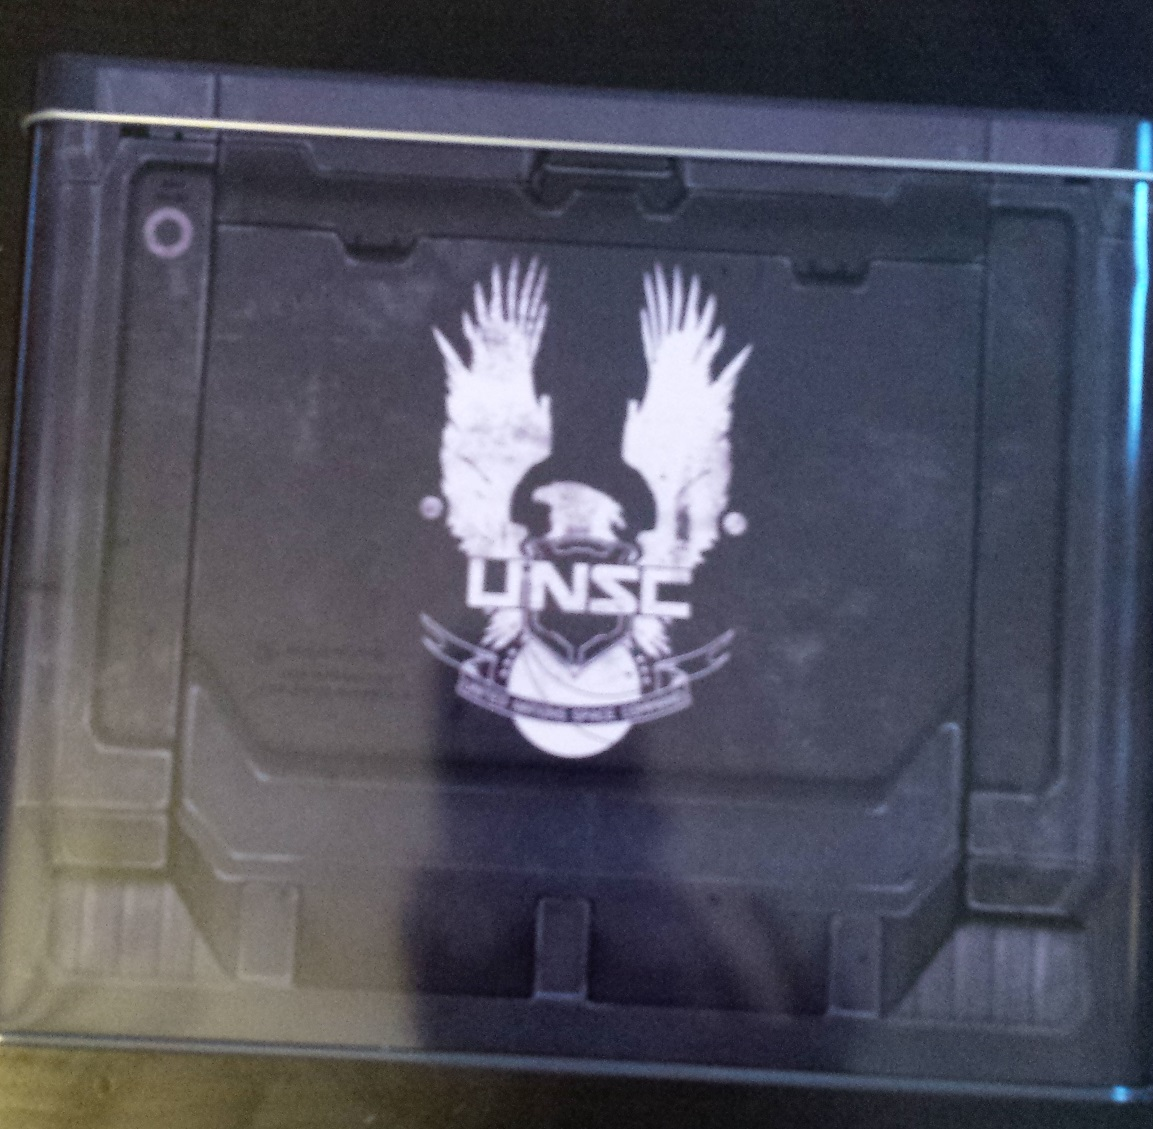 Lunchbox, loot crate, loot crate review, december loot crate, discovery loot crate